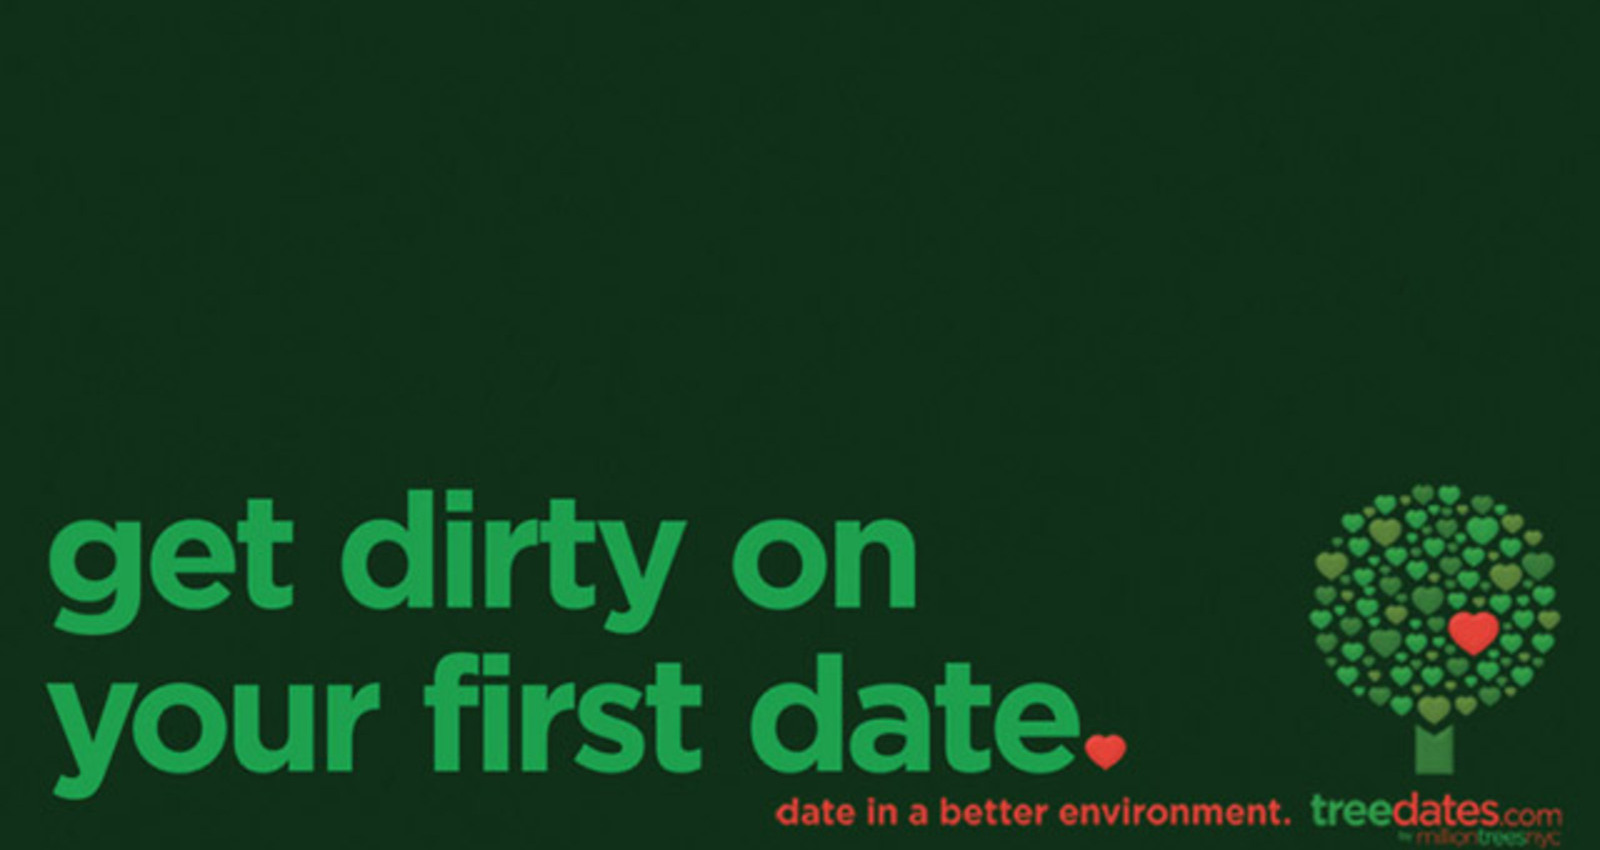 Date in a better environment